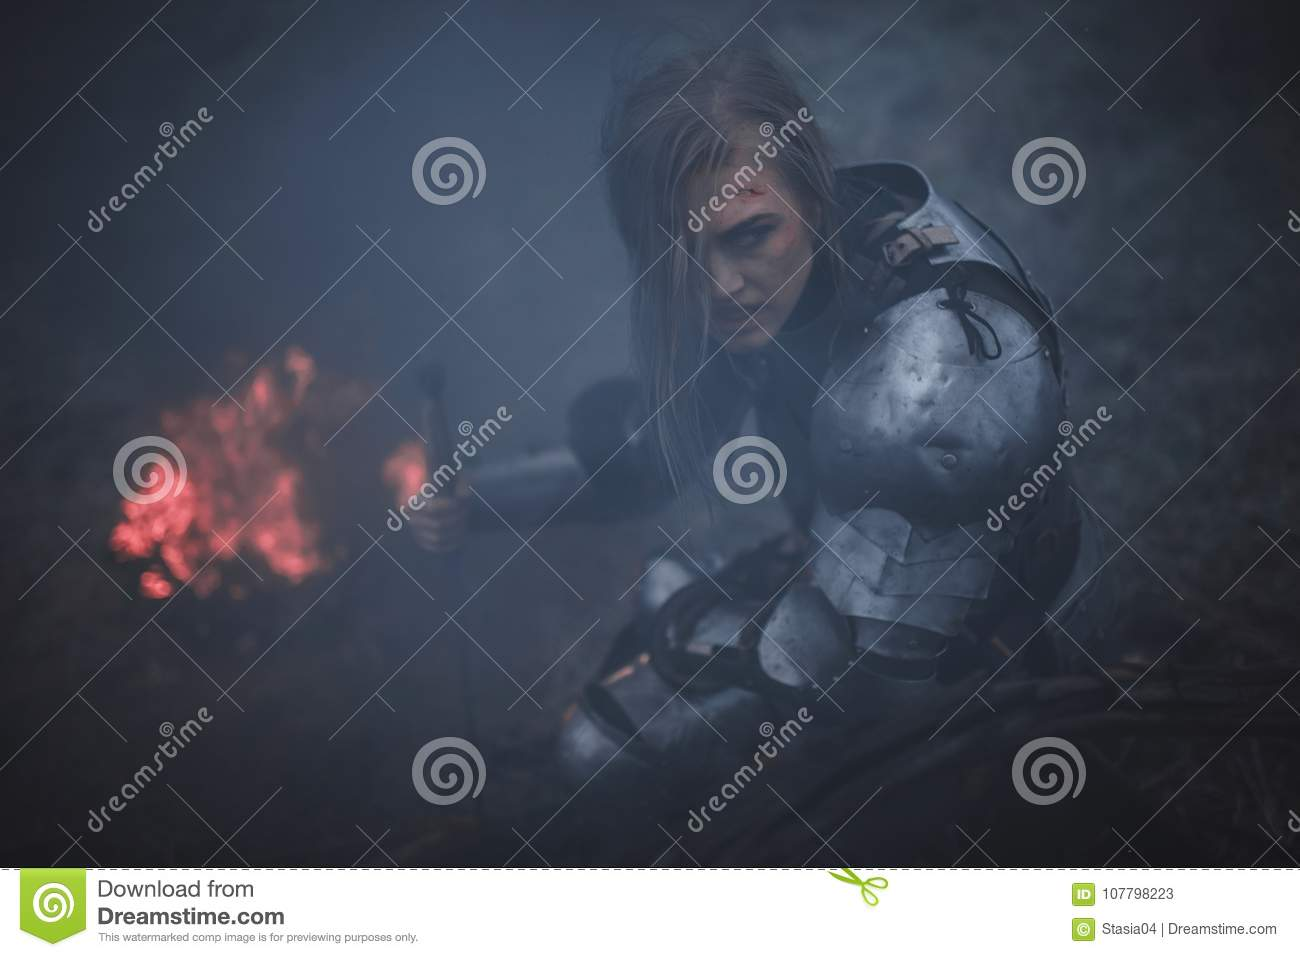 Girl in image of Jeanne d`Arc in armor and with sword in her hands kneels against background of fire and smoke.